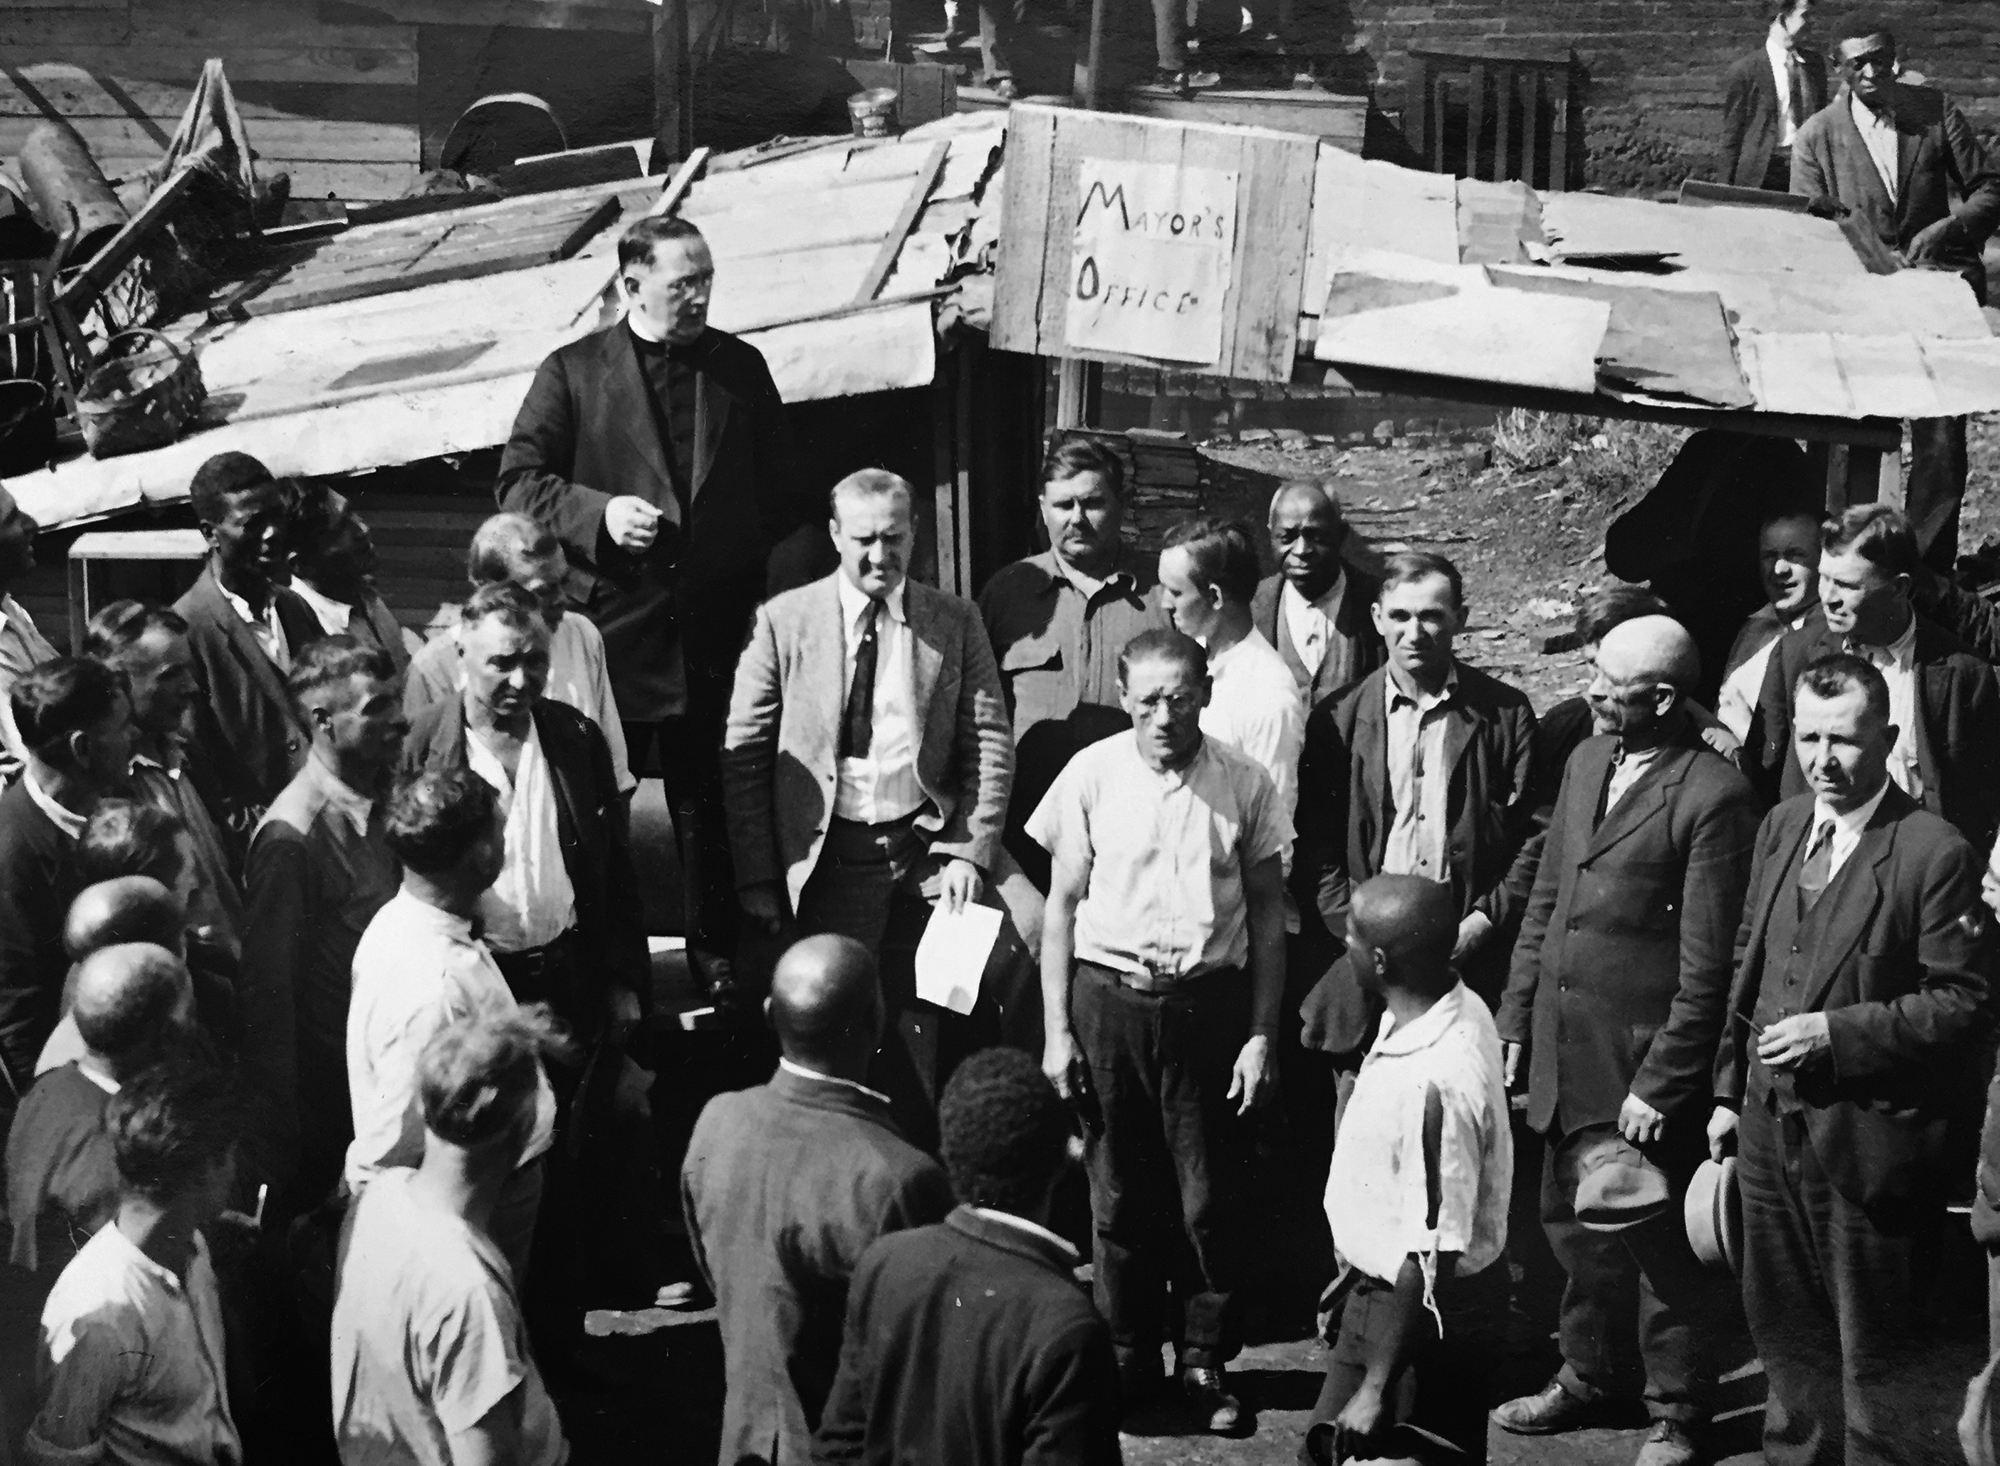 Father Cox rises above the crowd as the shantytown's mayor. (The Pittsburgh Press)